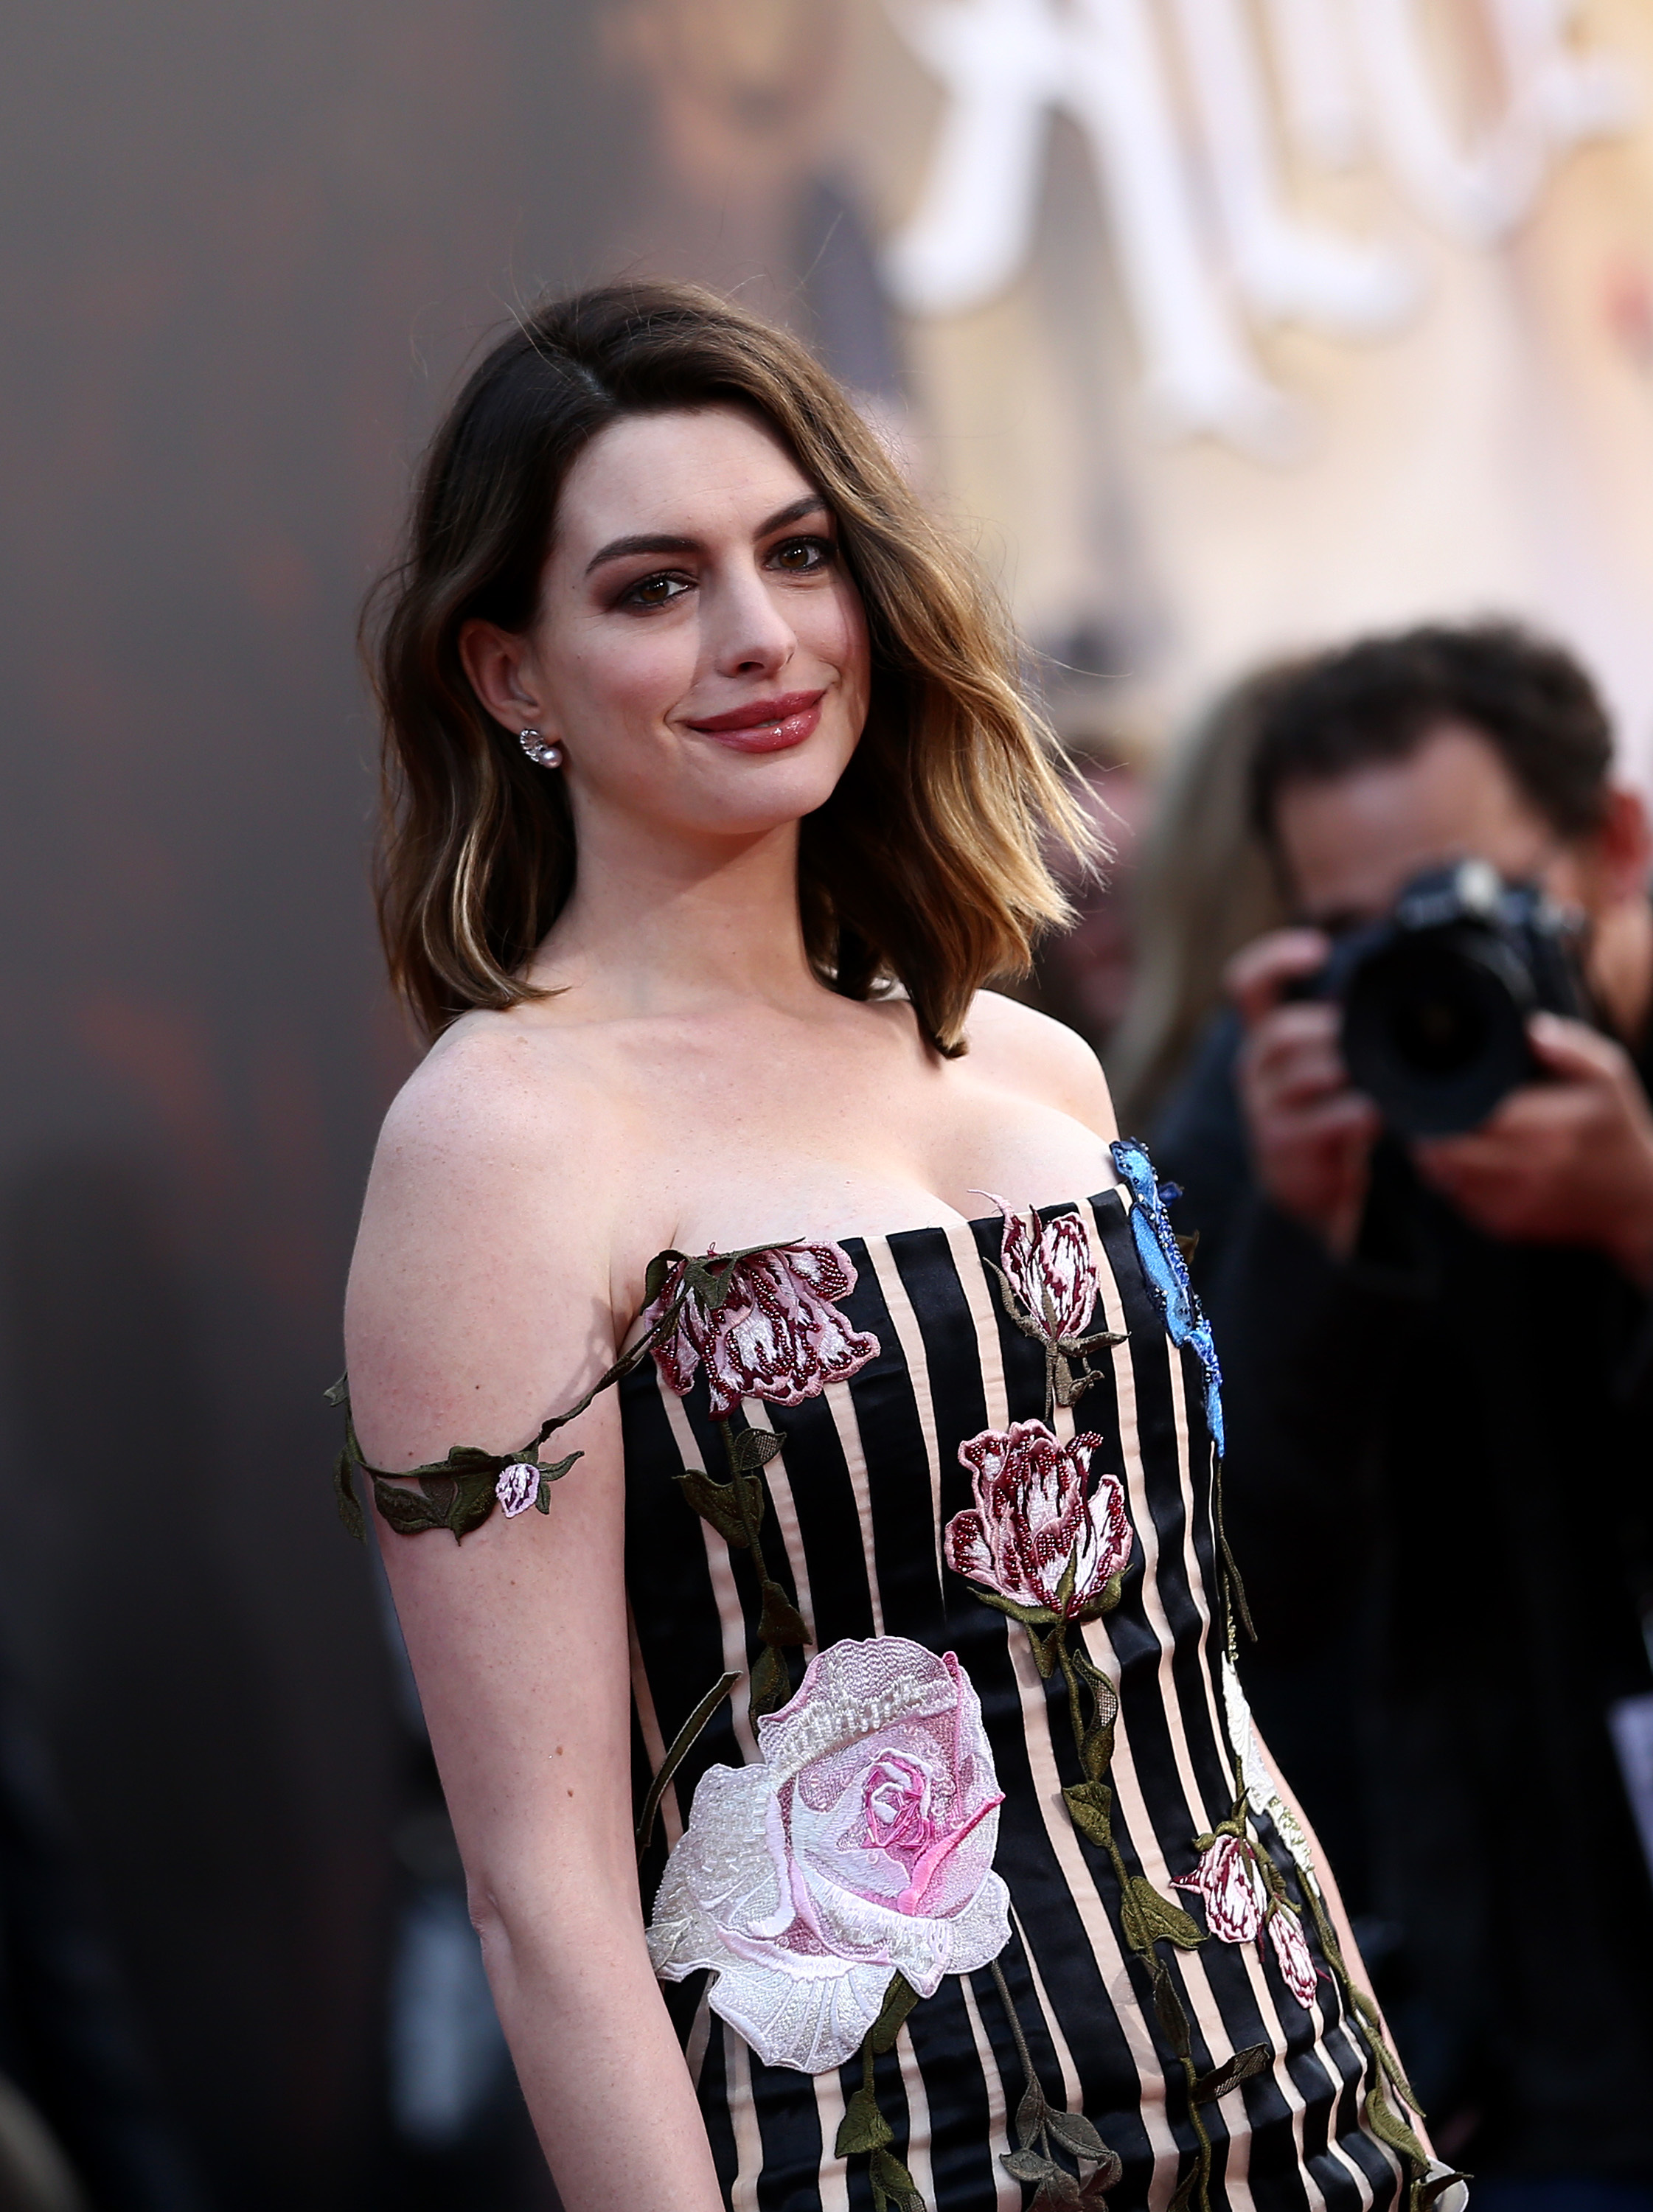 Anne Hathaway went back to the gym after giving birth; it did not go well